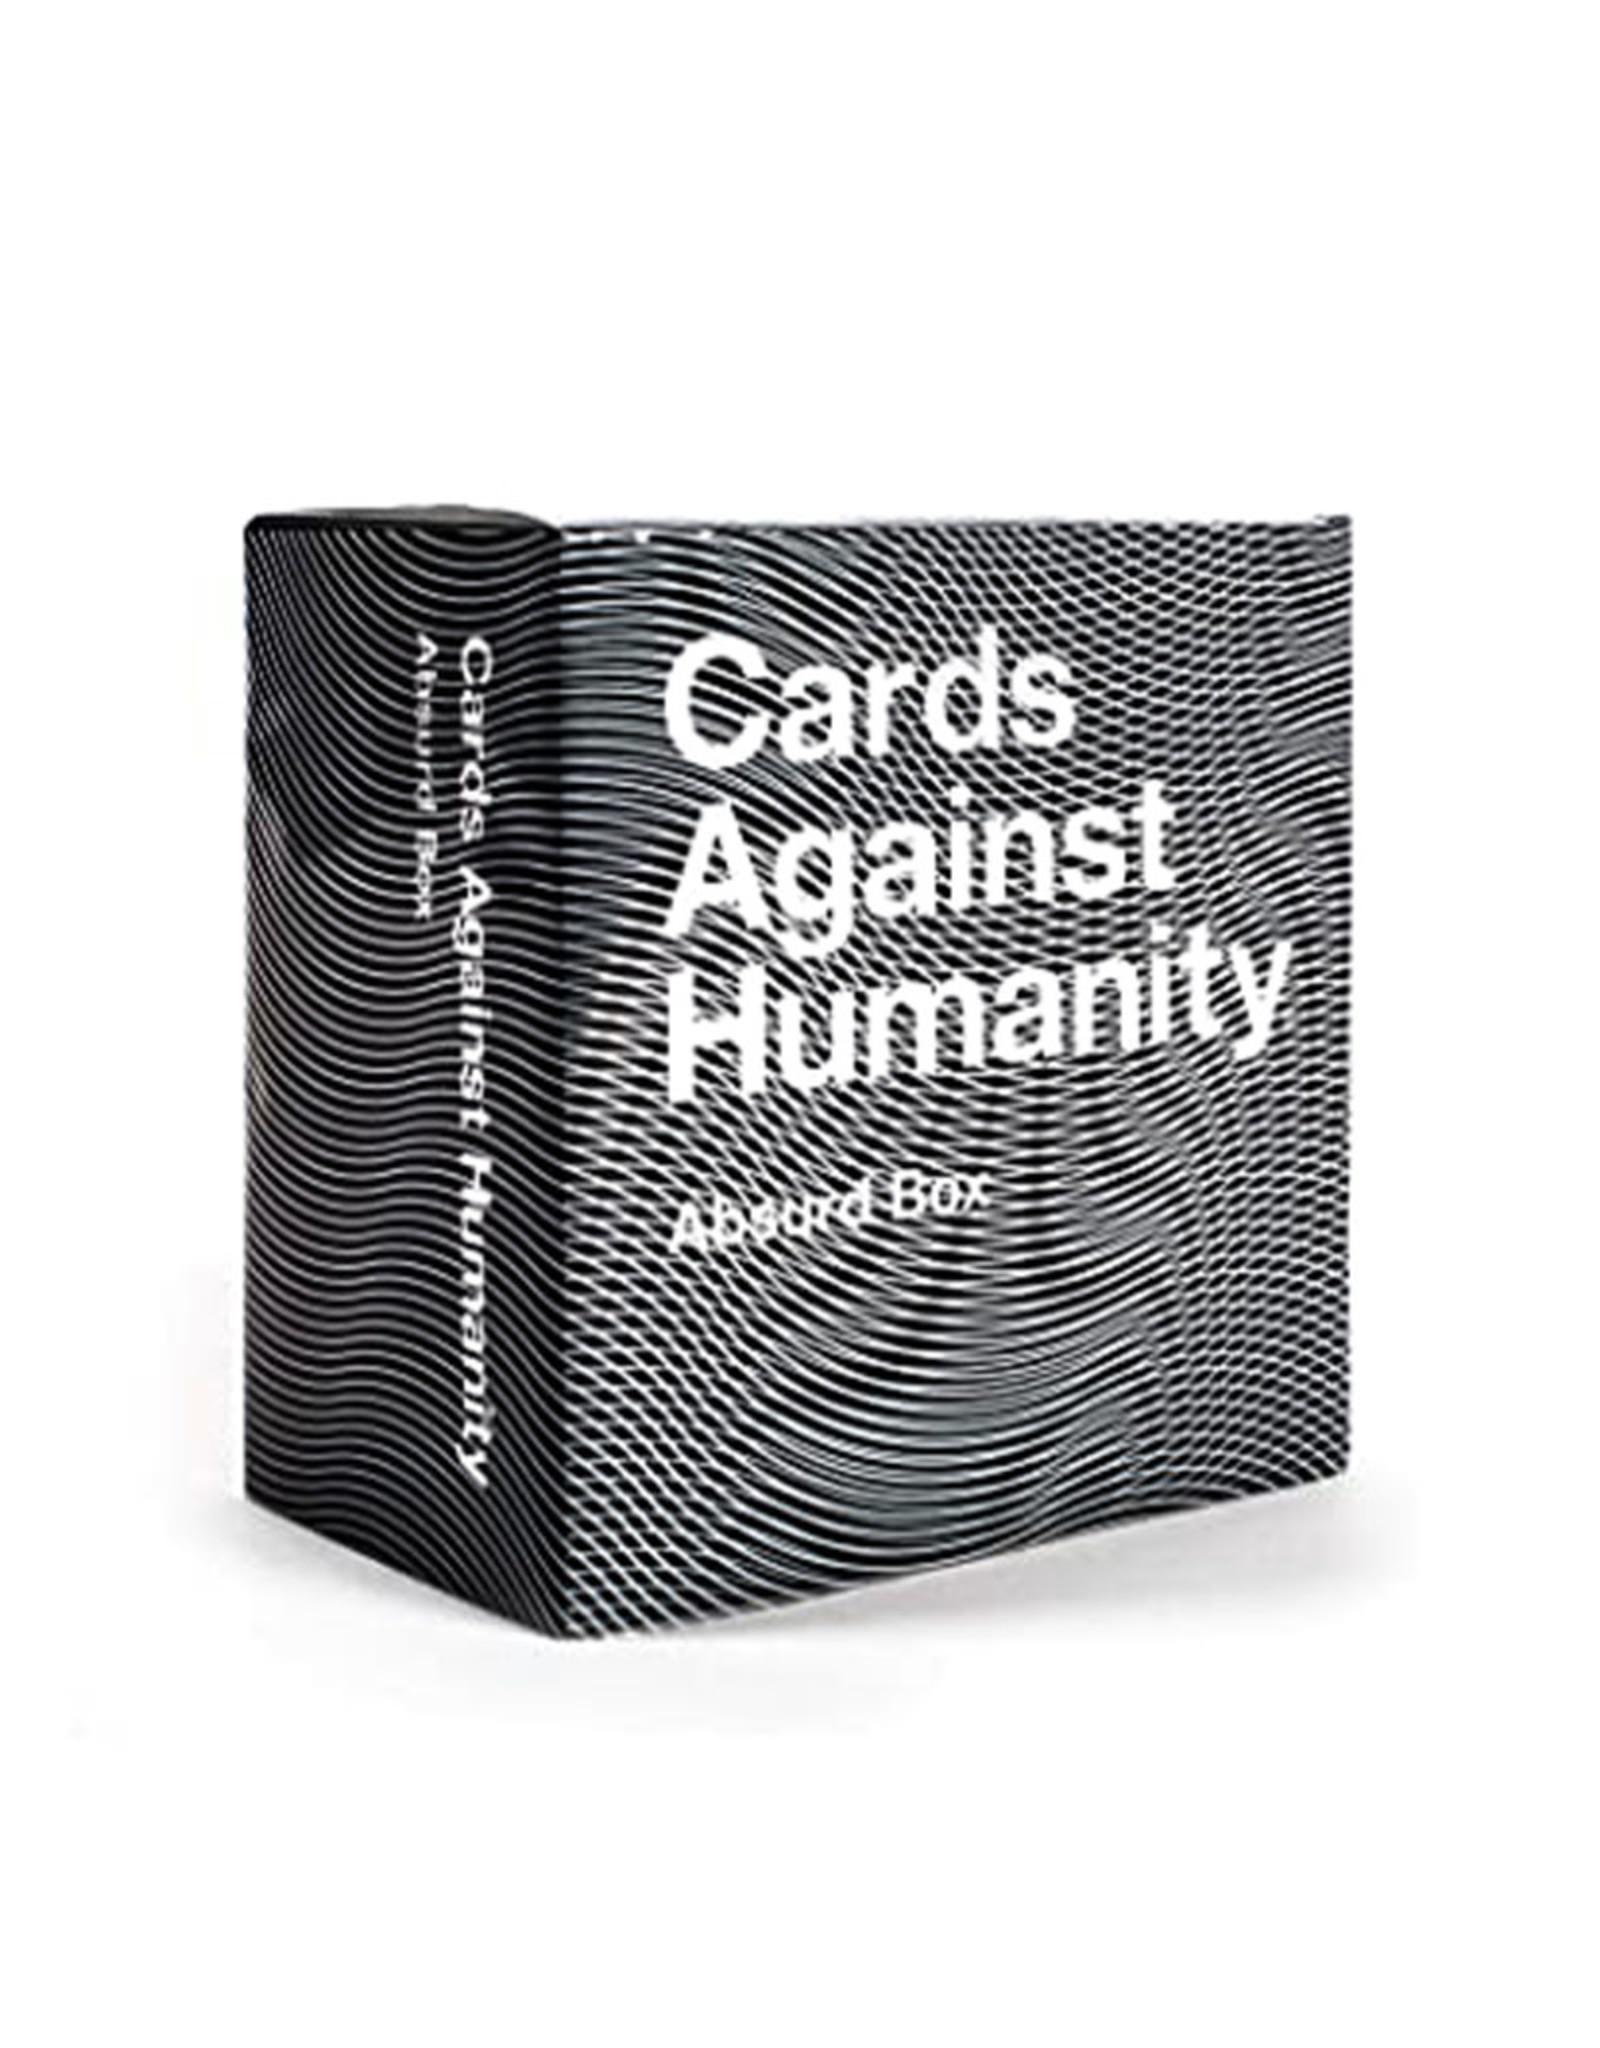 Breaking Games Cards Against Humanity Absurd Box Expansion